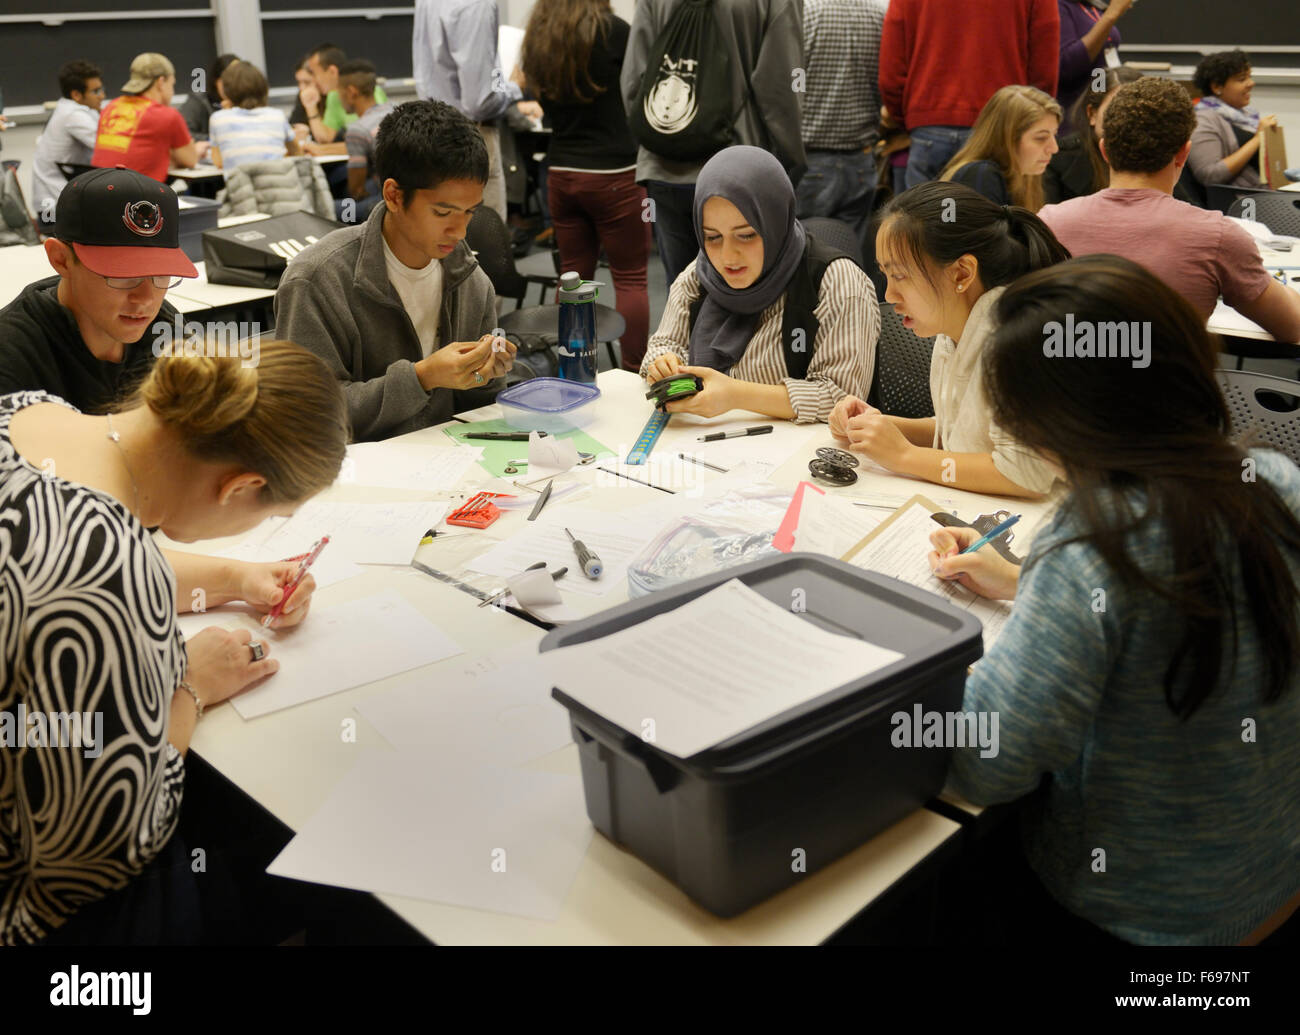 College classroom, electrical engineering class with ethnic and gender diversity - group of university students - Stock Image